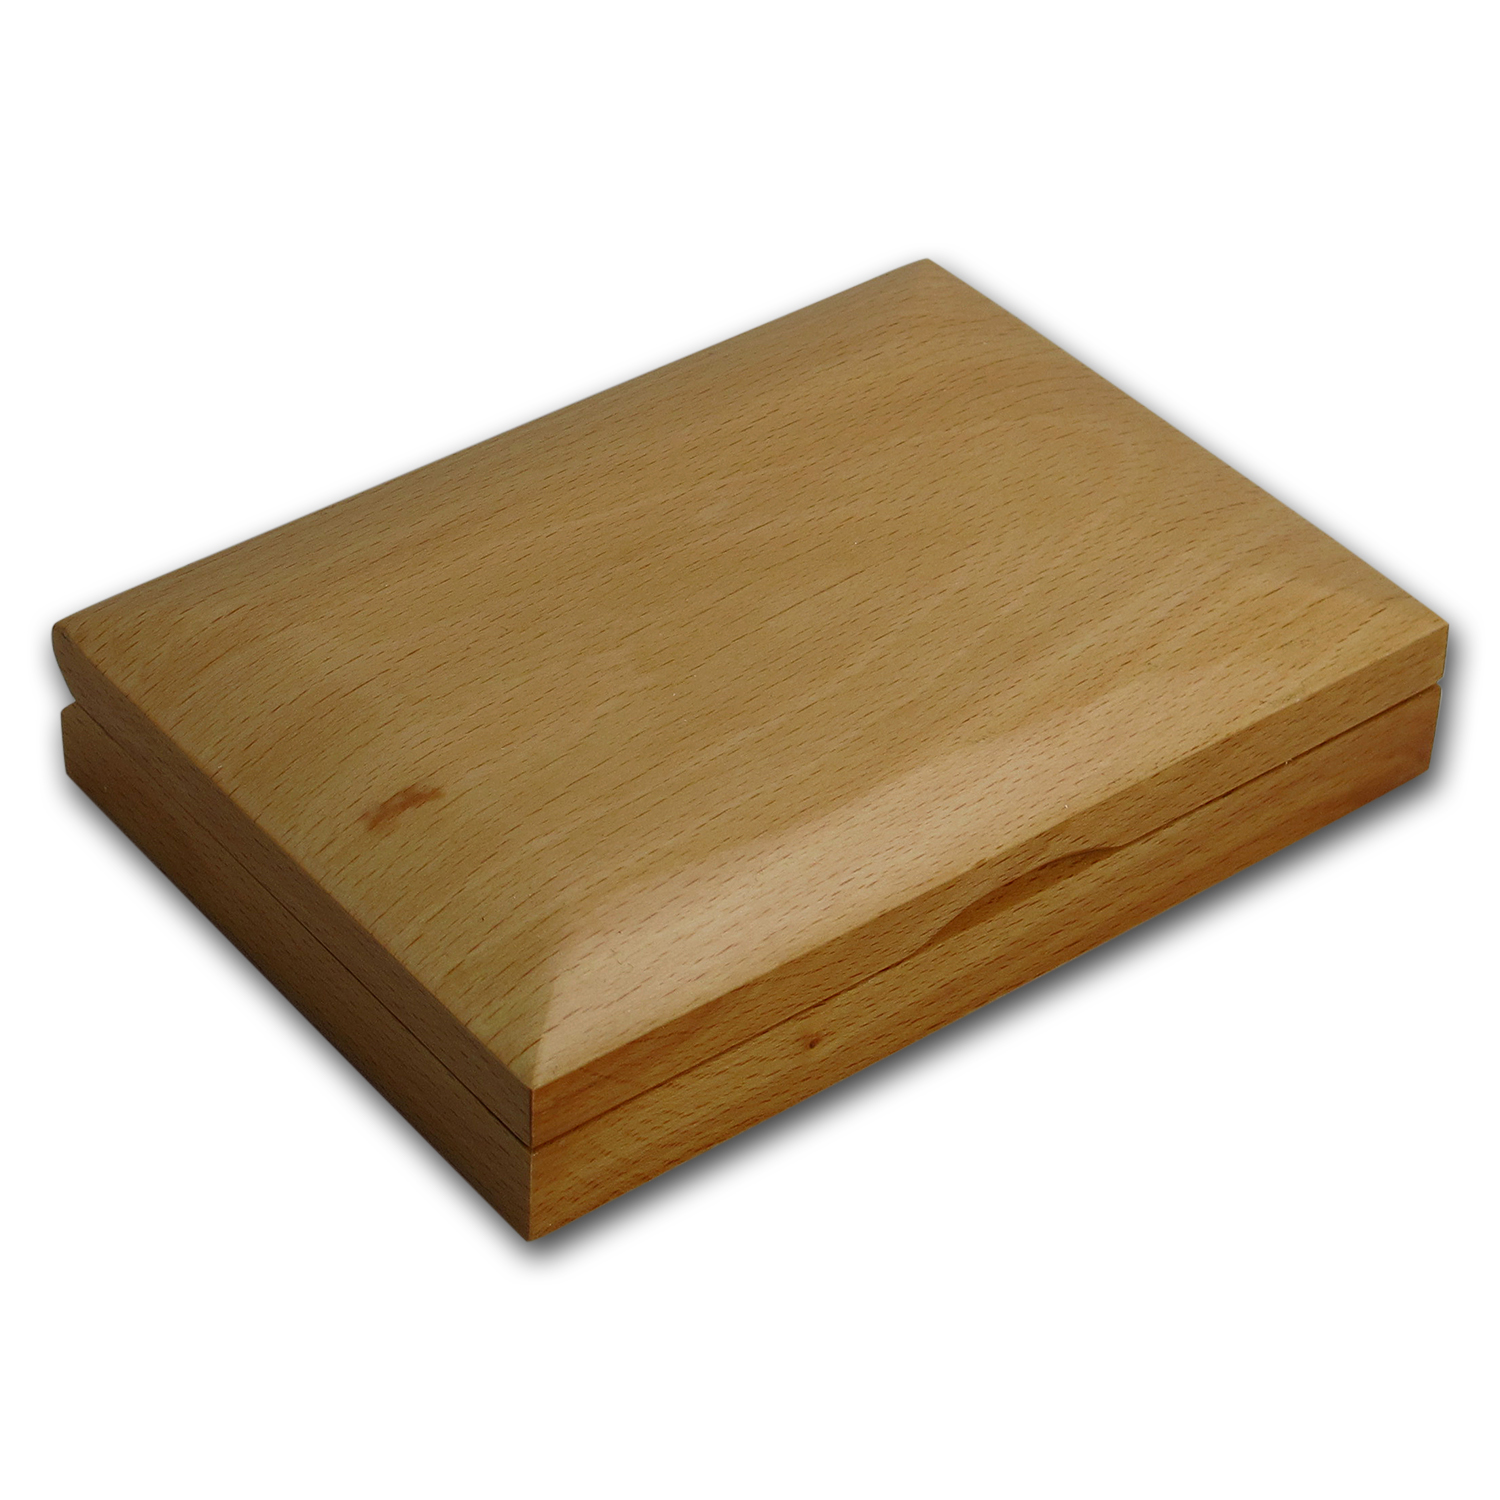 2 coin Wood Presentation Box - Fits Up to 40 mm (RCM Box)